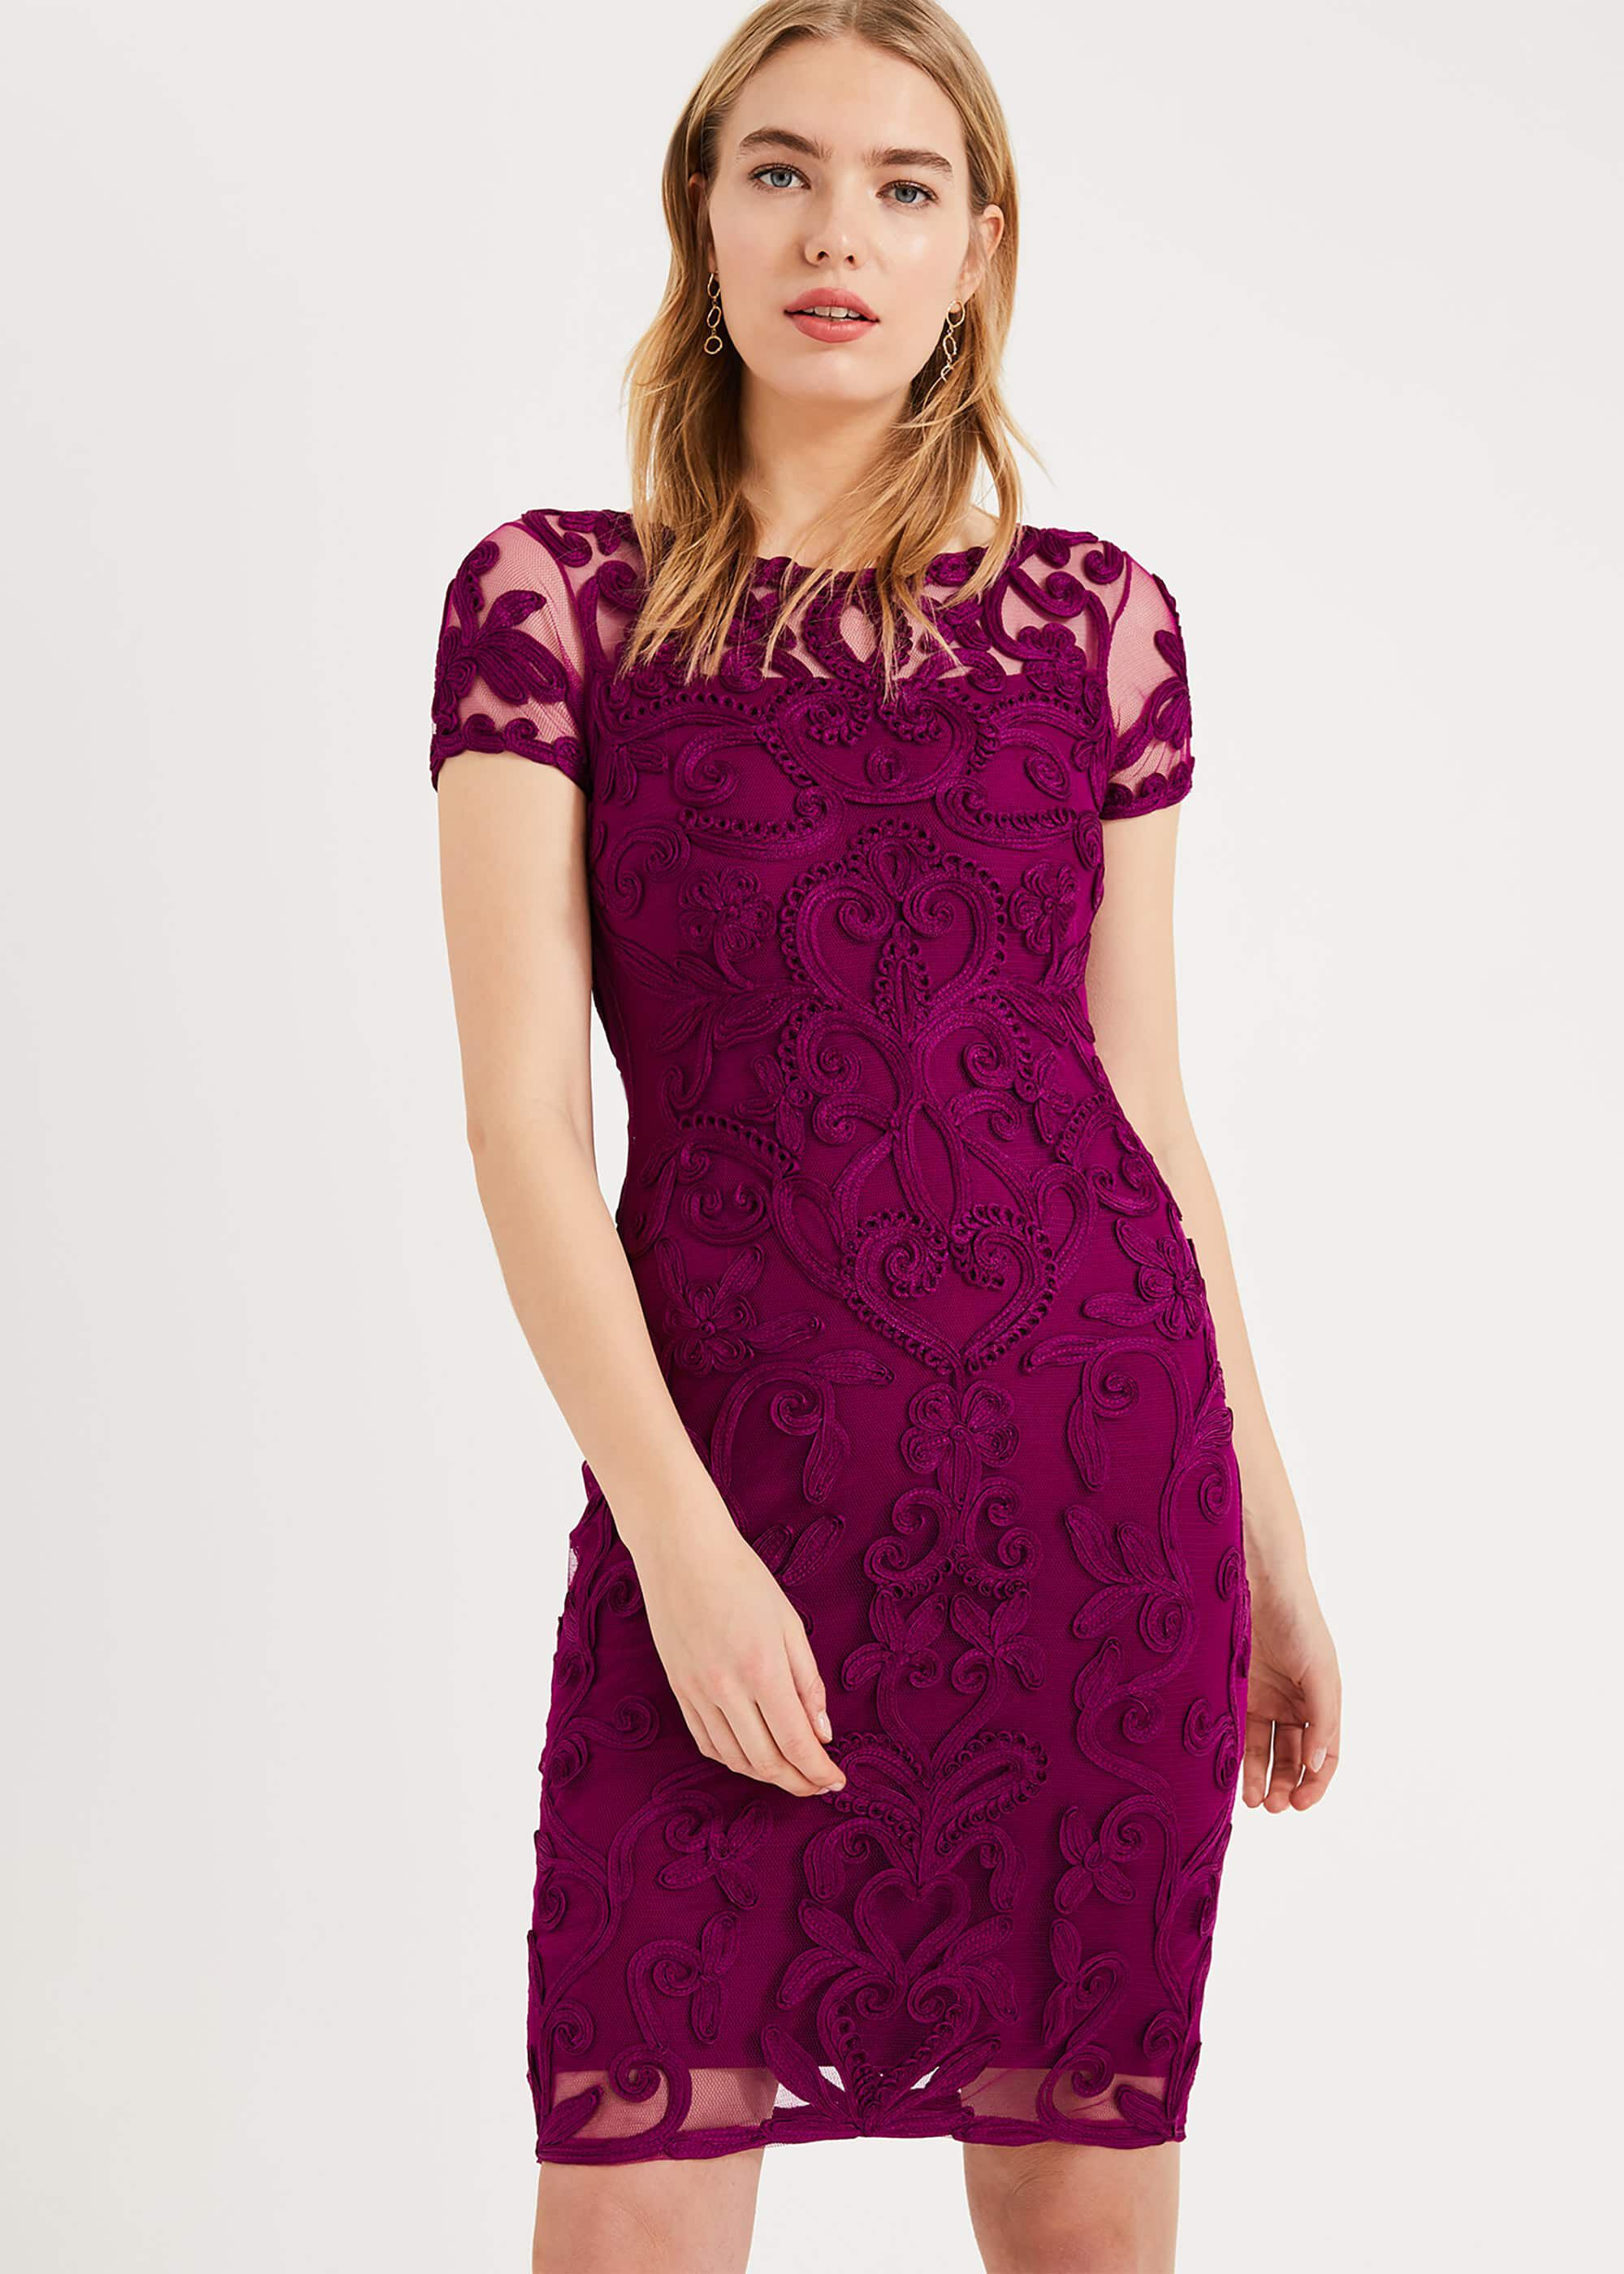 Phase Eight Sheena Tapework Dress, Purple, Fitted, Occasion Dress